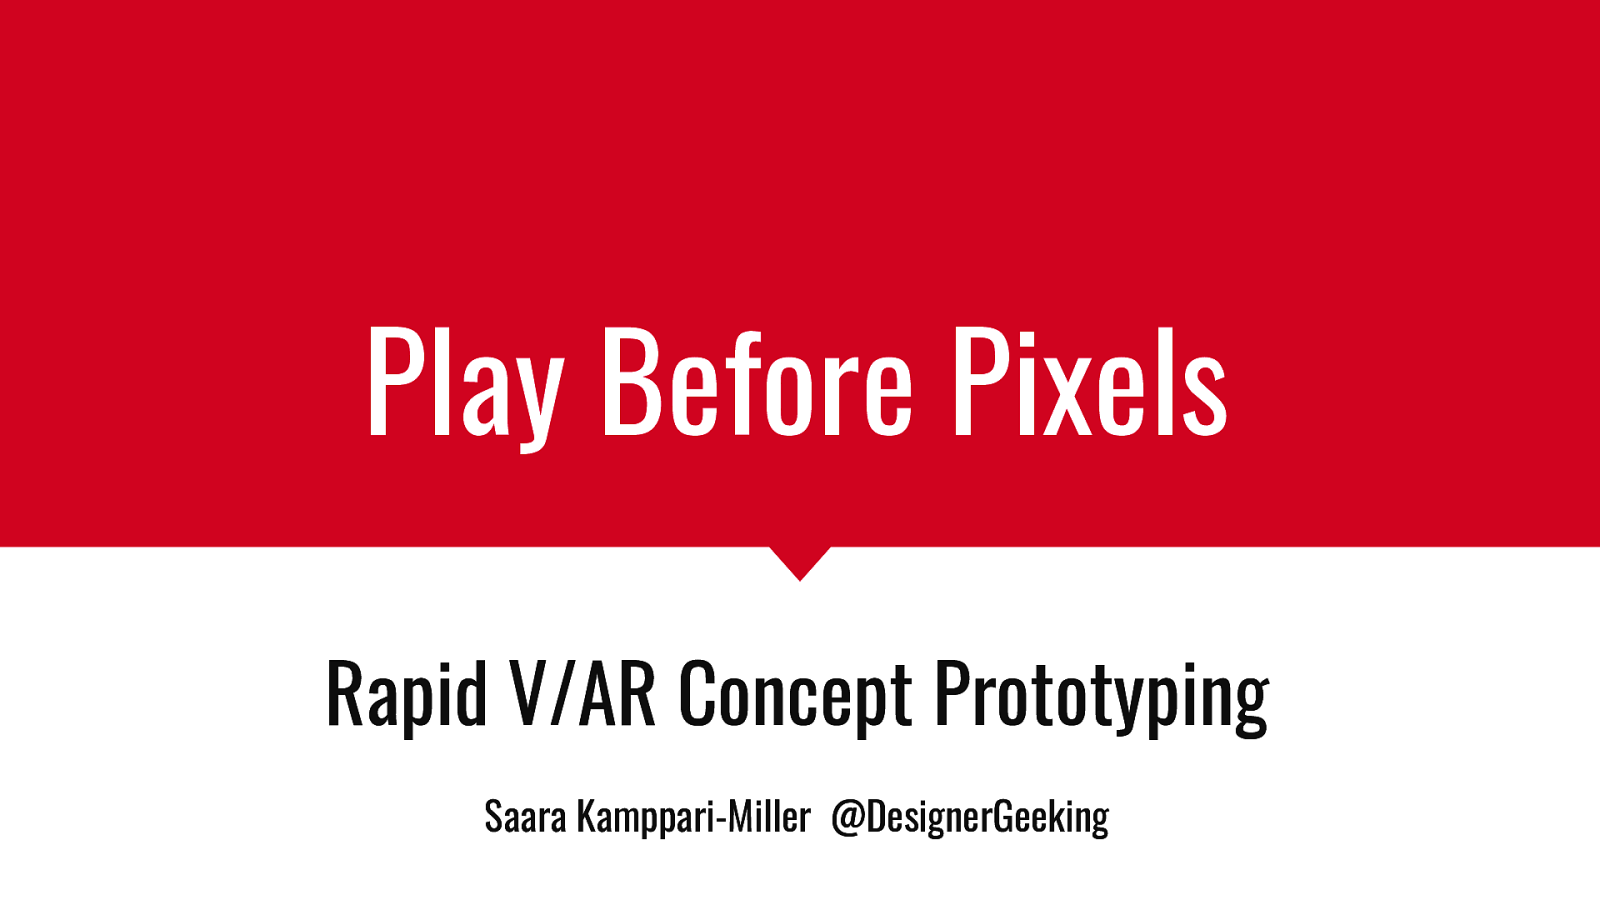 Play Before Pixels, Rapid V/AR Concept Prototyping